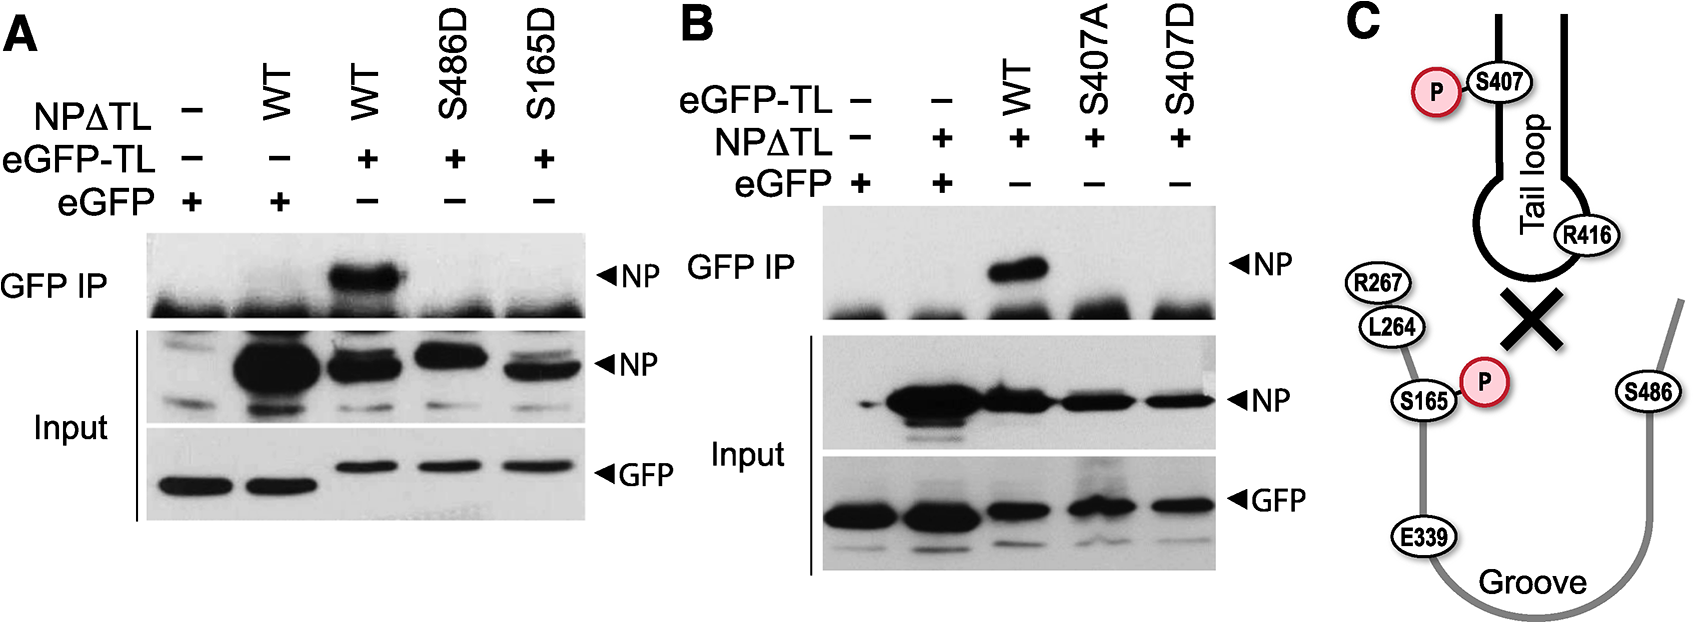 Phosphorylation of the tail loop and binding groove maintains monomeric NP.